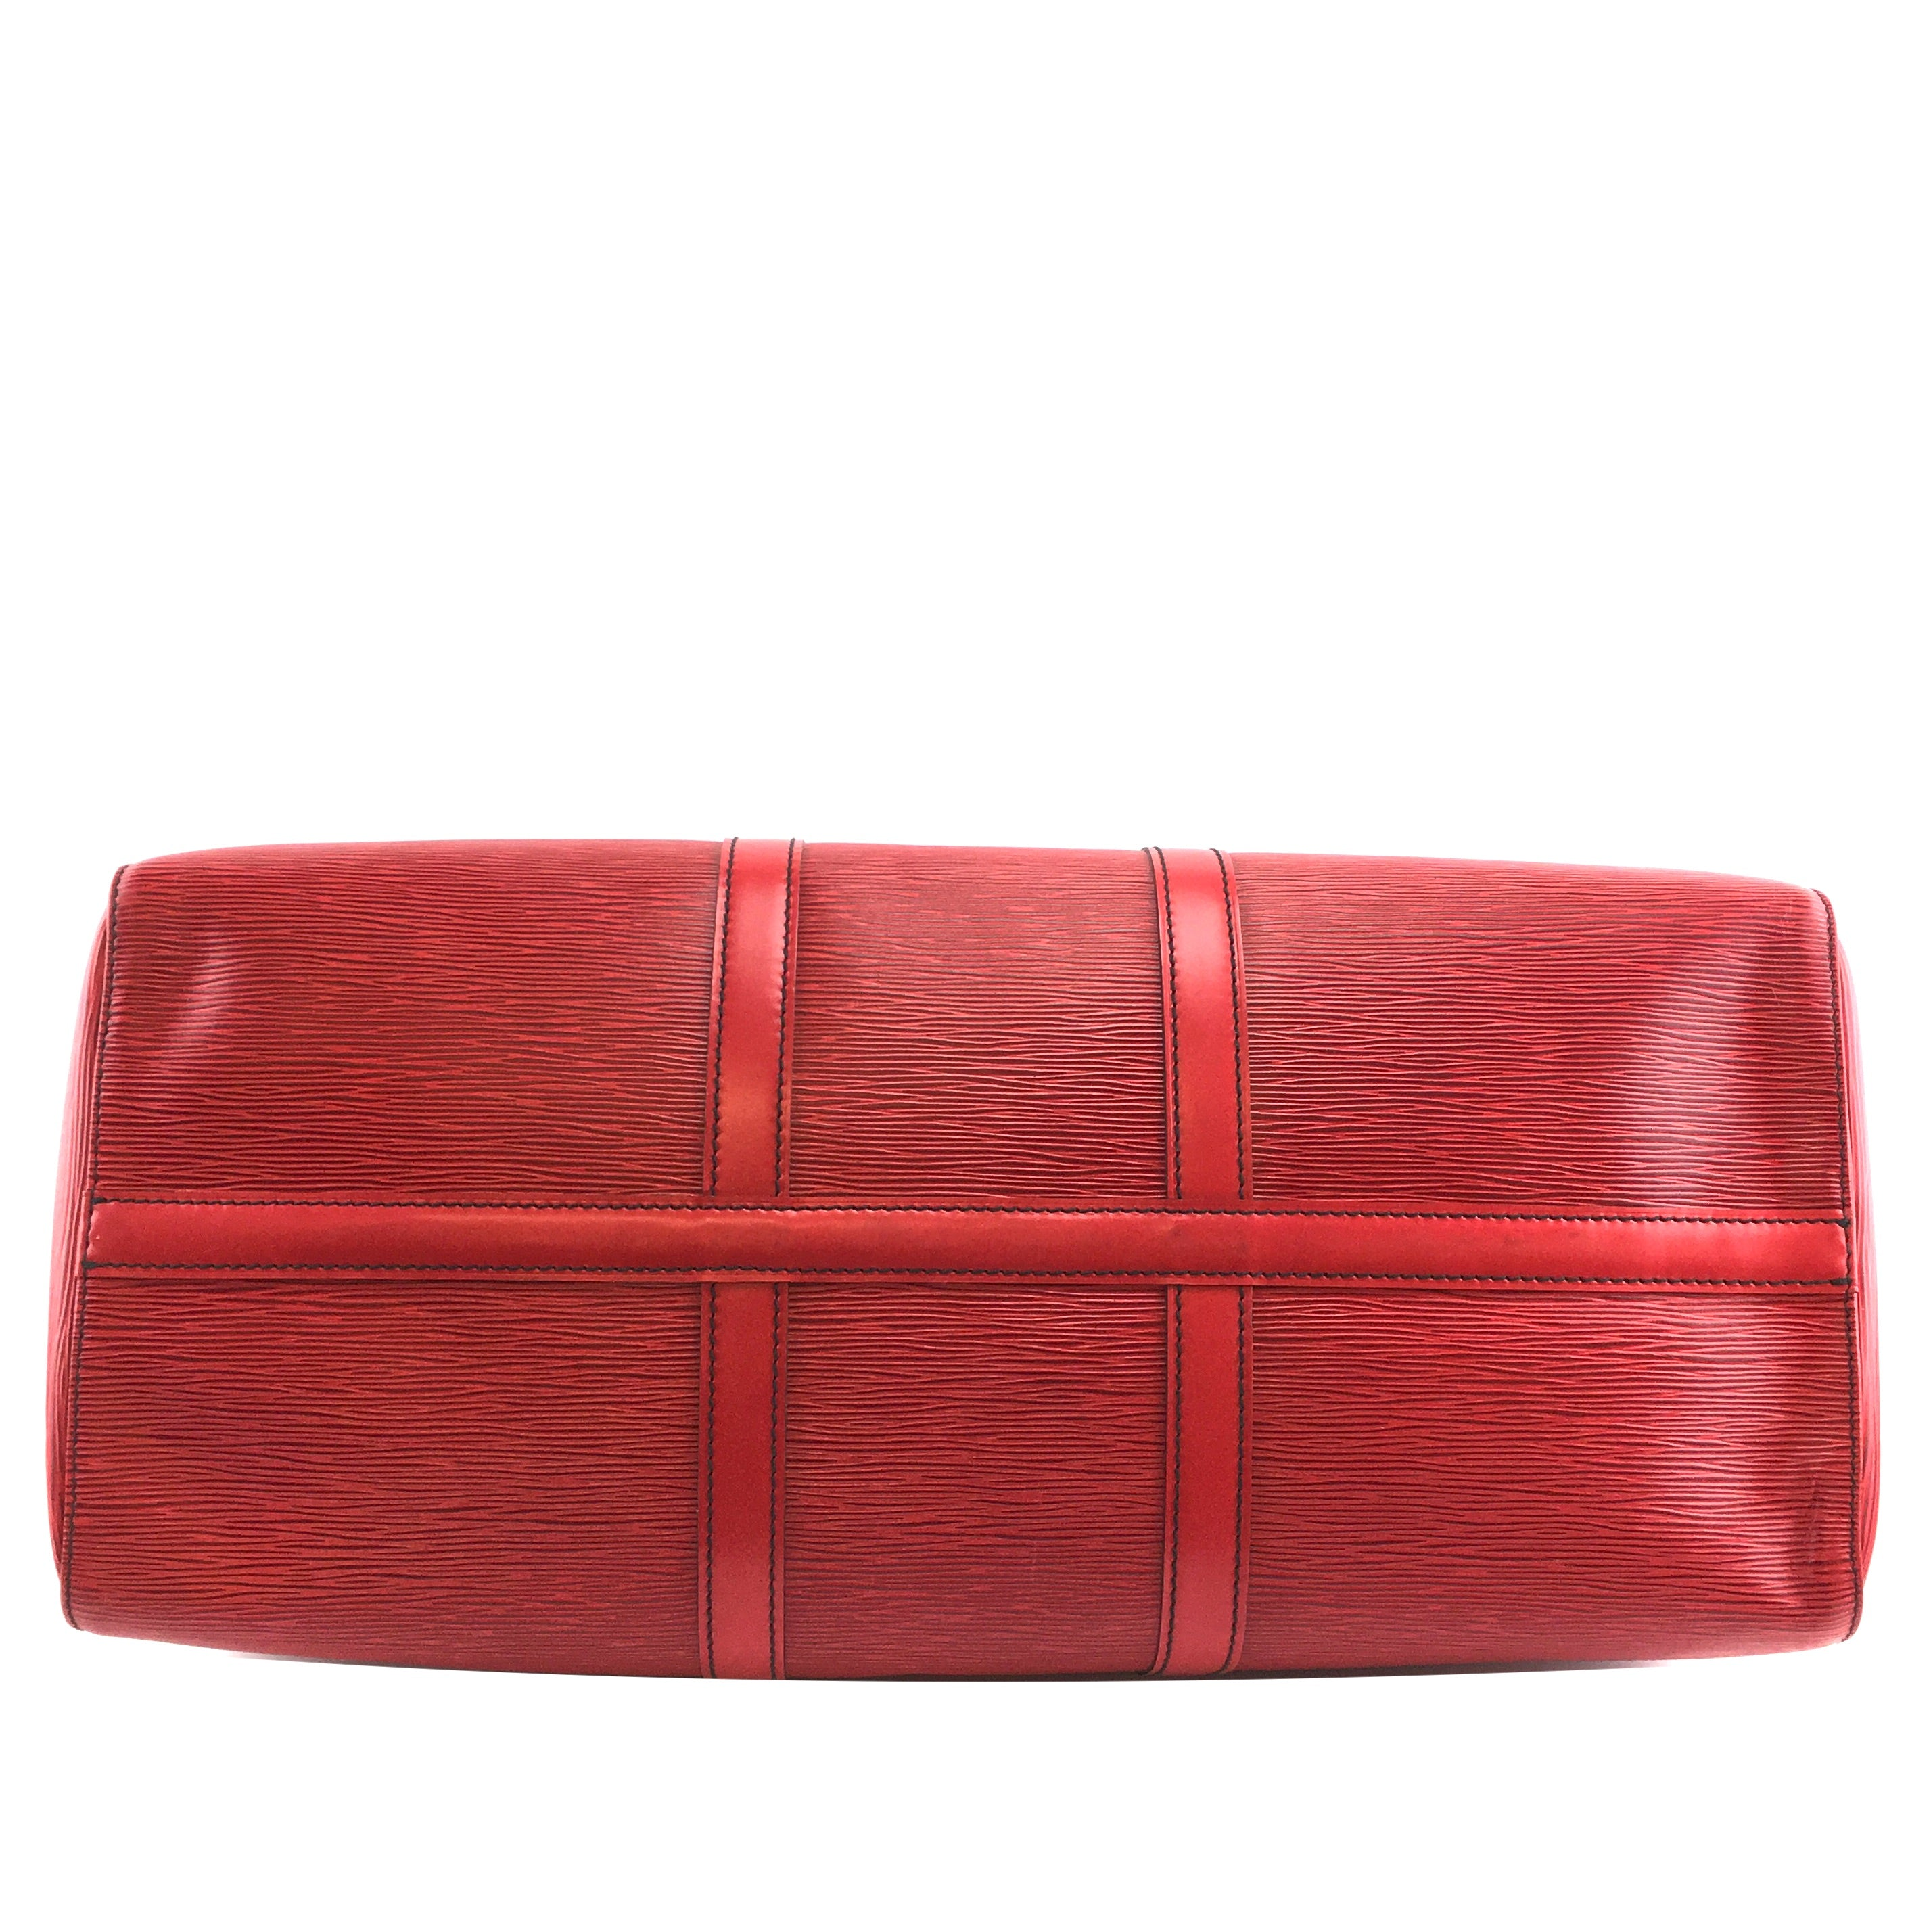 Louis Vuitton Keepall 50 Red Epi Leather